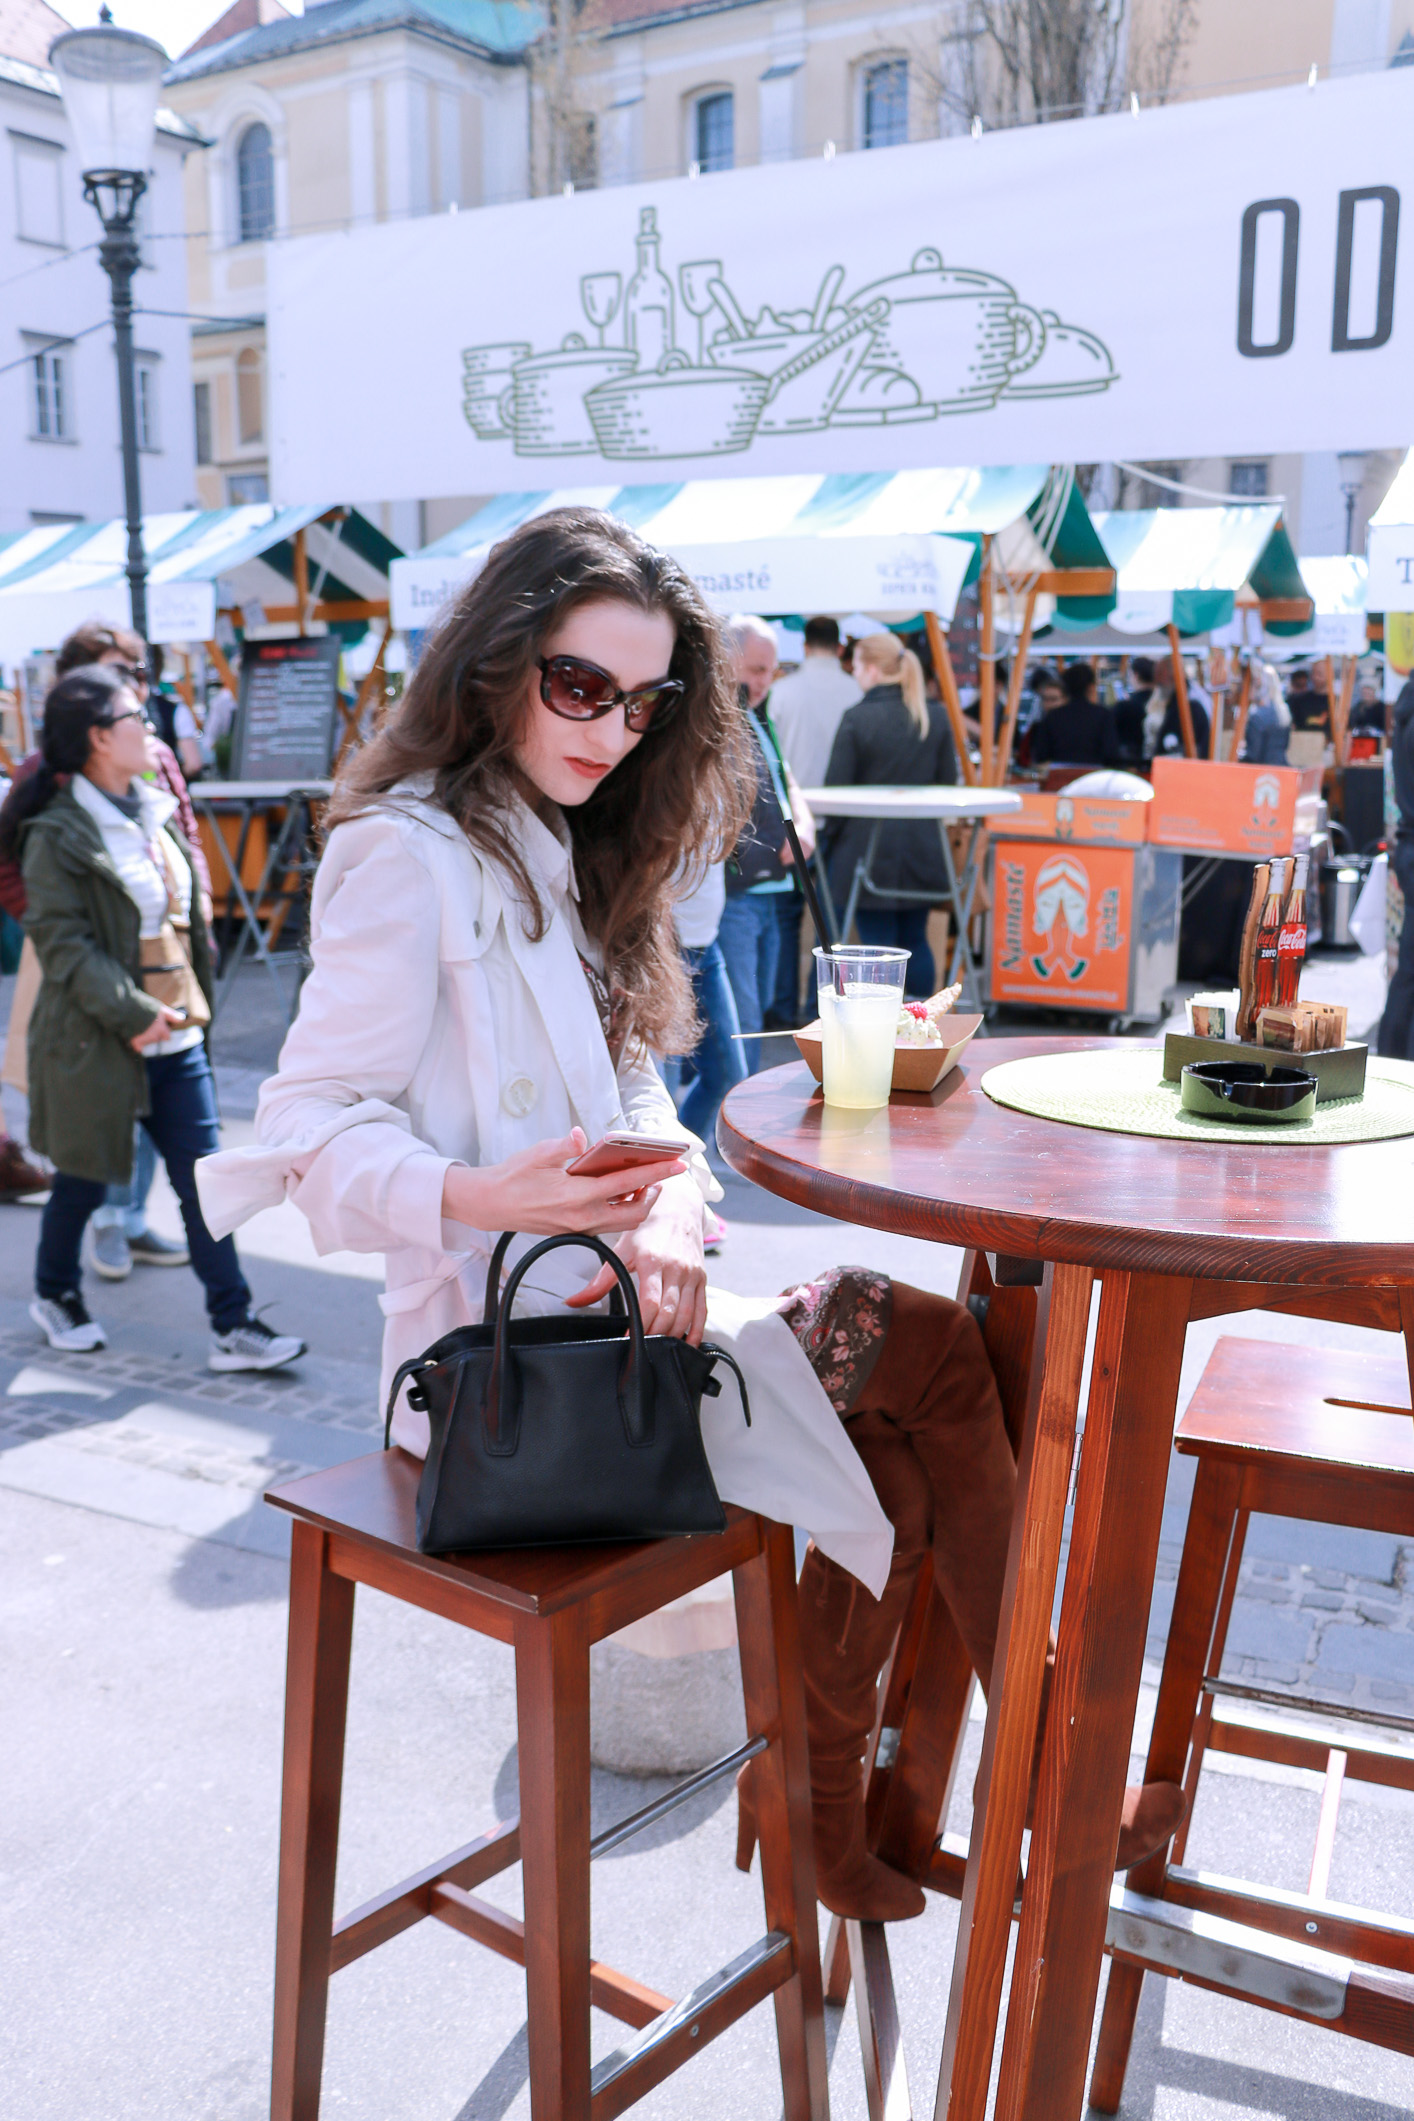 Fashion blogger Veronika Lipar of Brunette From Wall Street wearing over the knee boots at the Open Kitchen Odprta Kuhna food festival in her Short Fashion Story